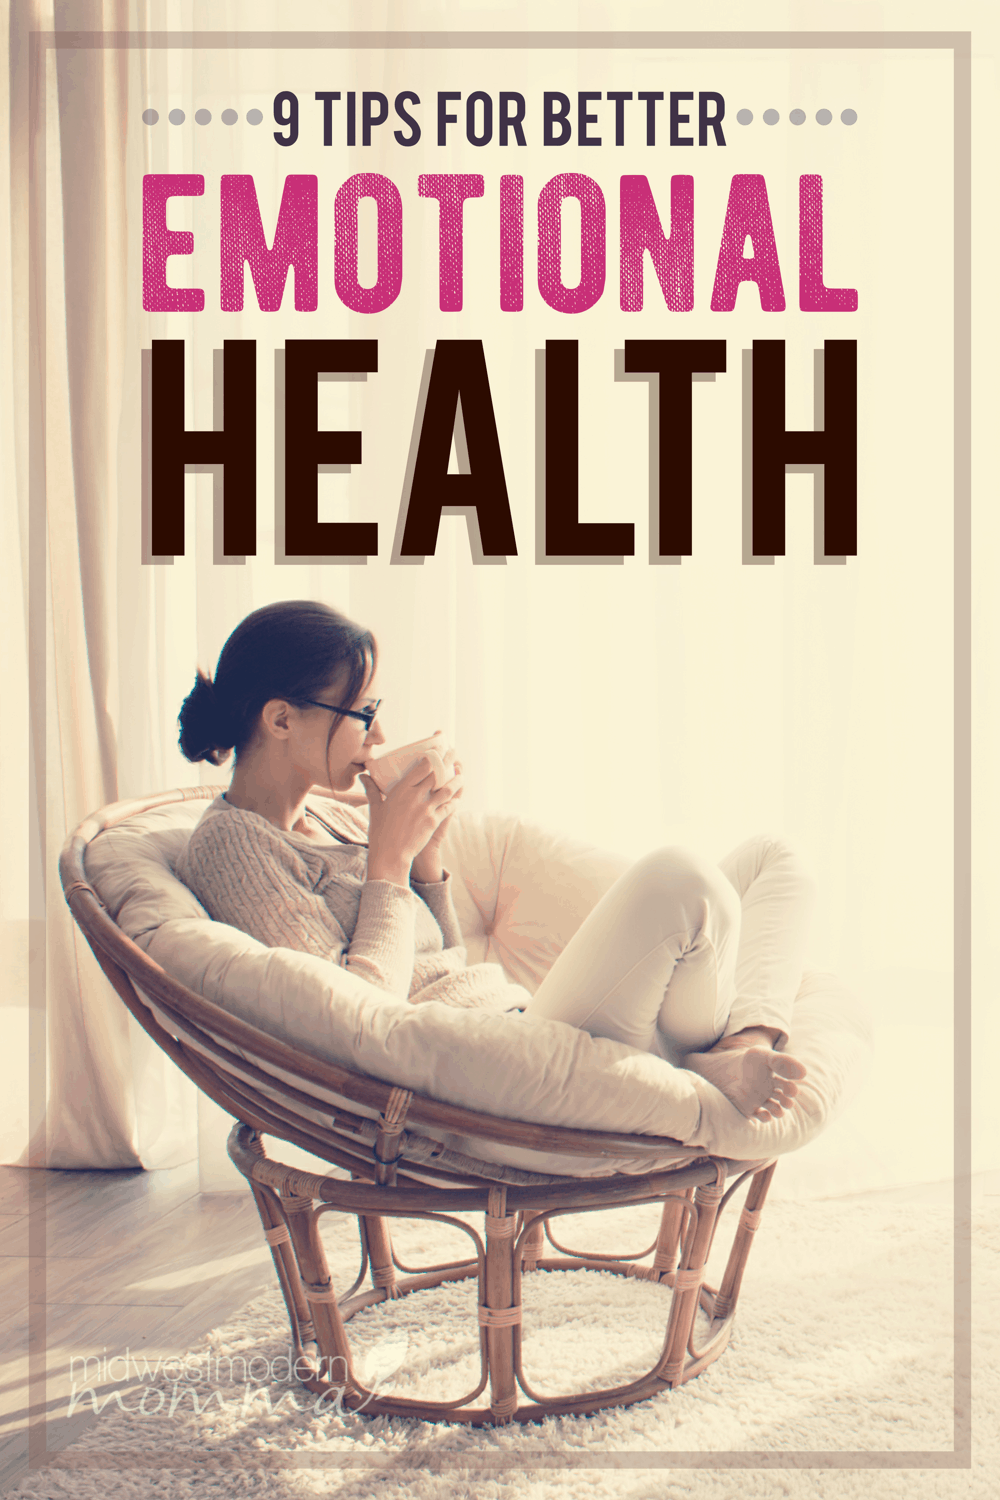 As moms, we tend to focus on every area of our life to organize, clean, and repair, but our own emotions. Here are 9 realistic ways to better your emotional health.